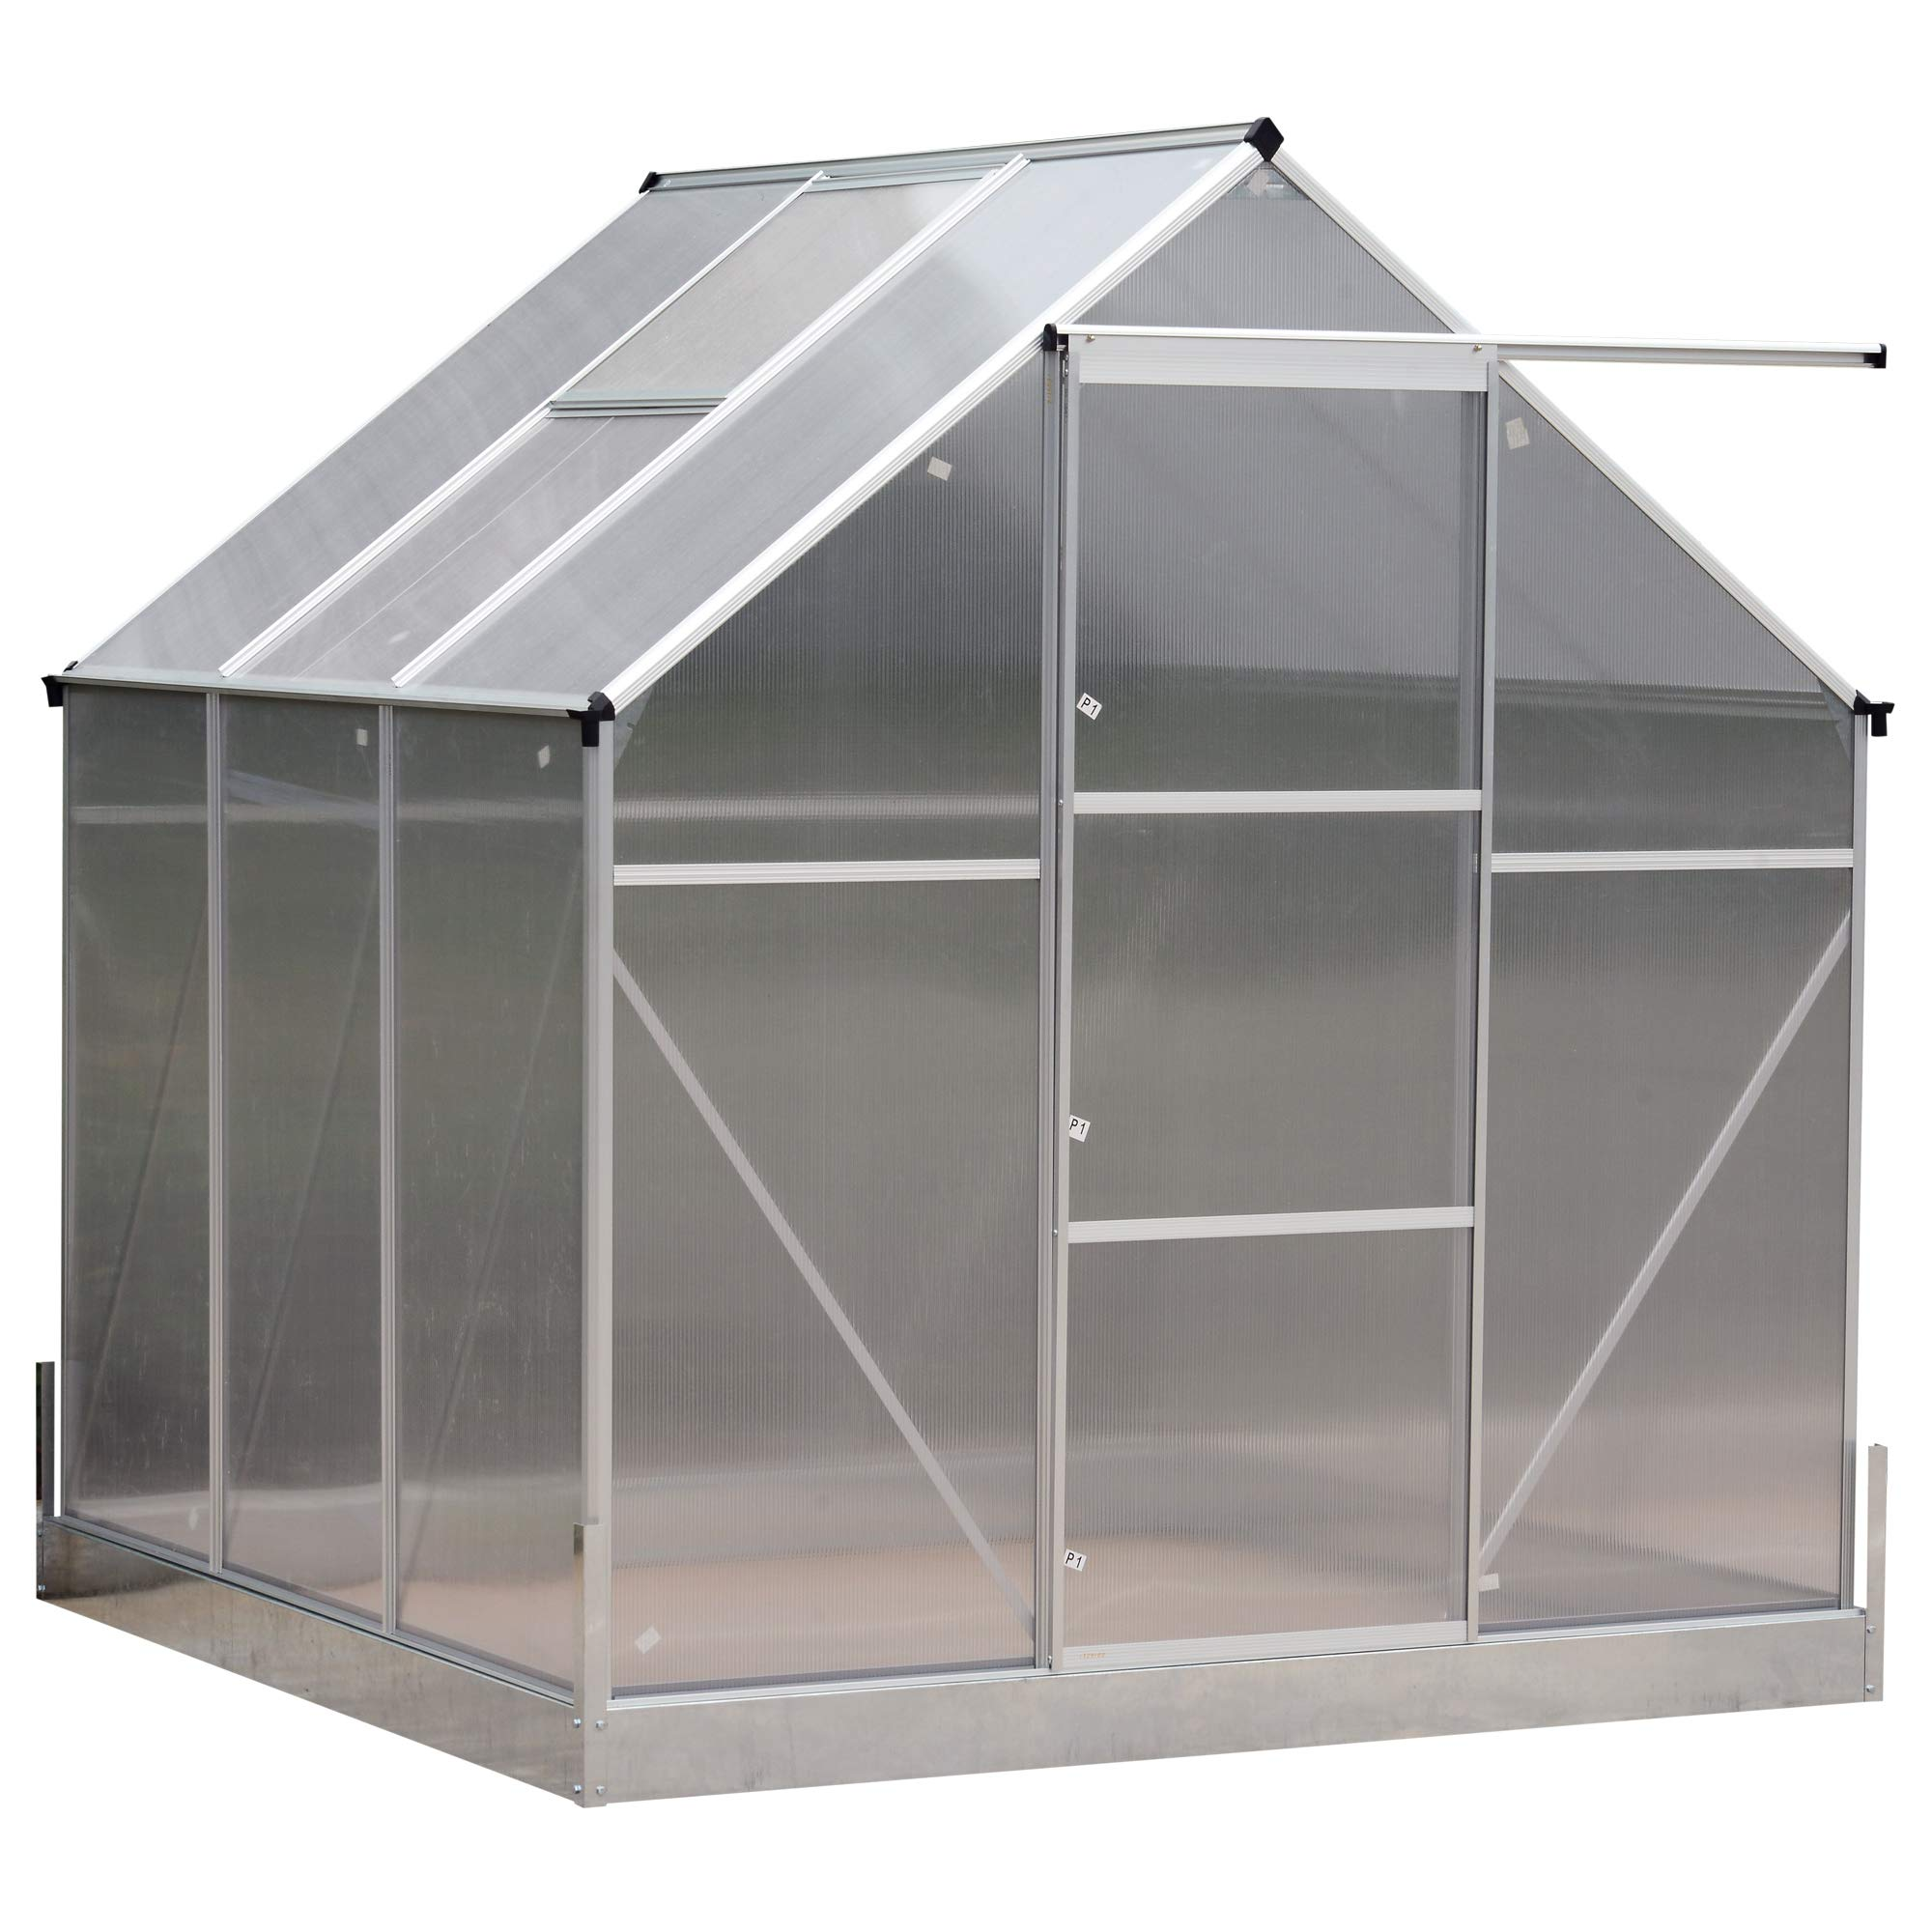 Outsunny 6.25' L x 6.25'W x 7.2'H Portable Outdoor Walk-in Garden Greenhouse Planter